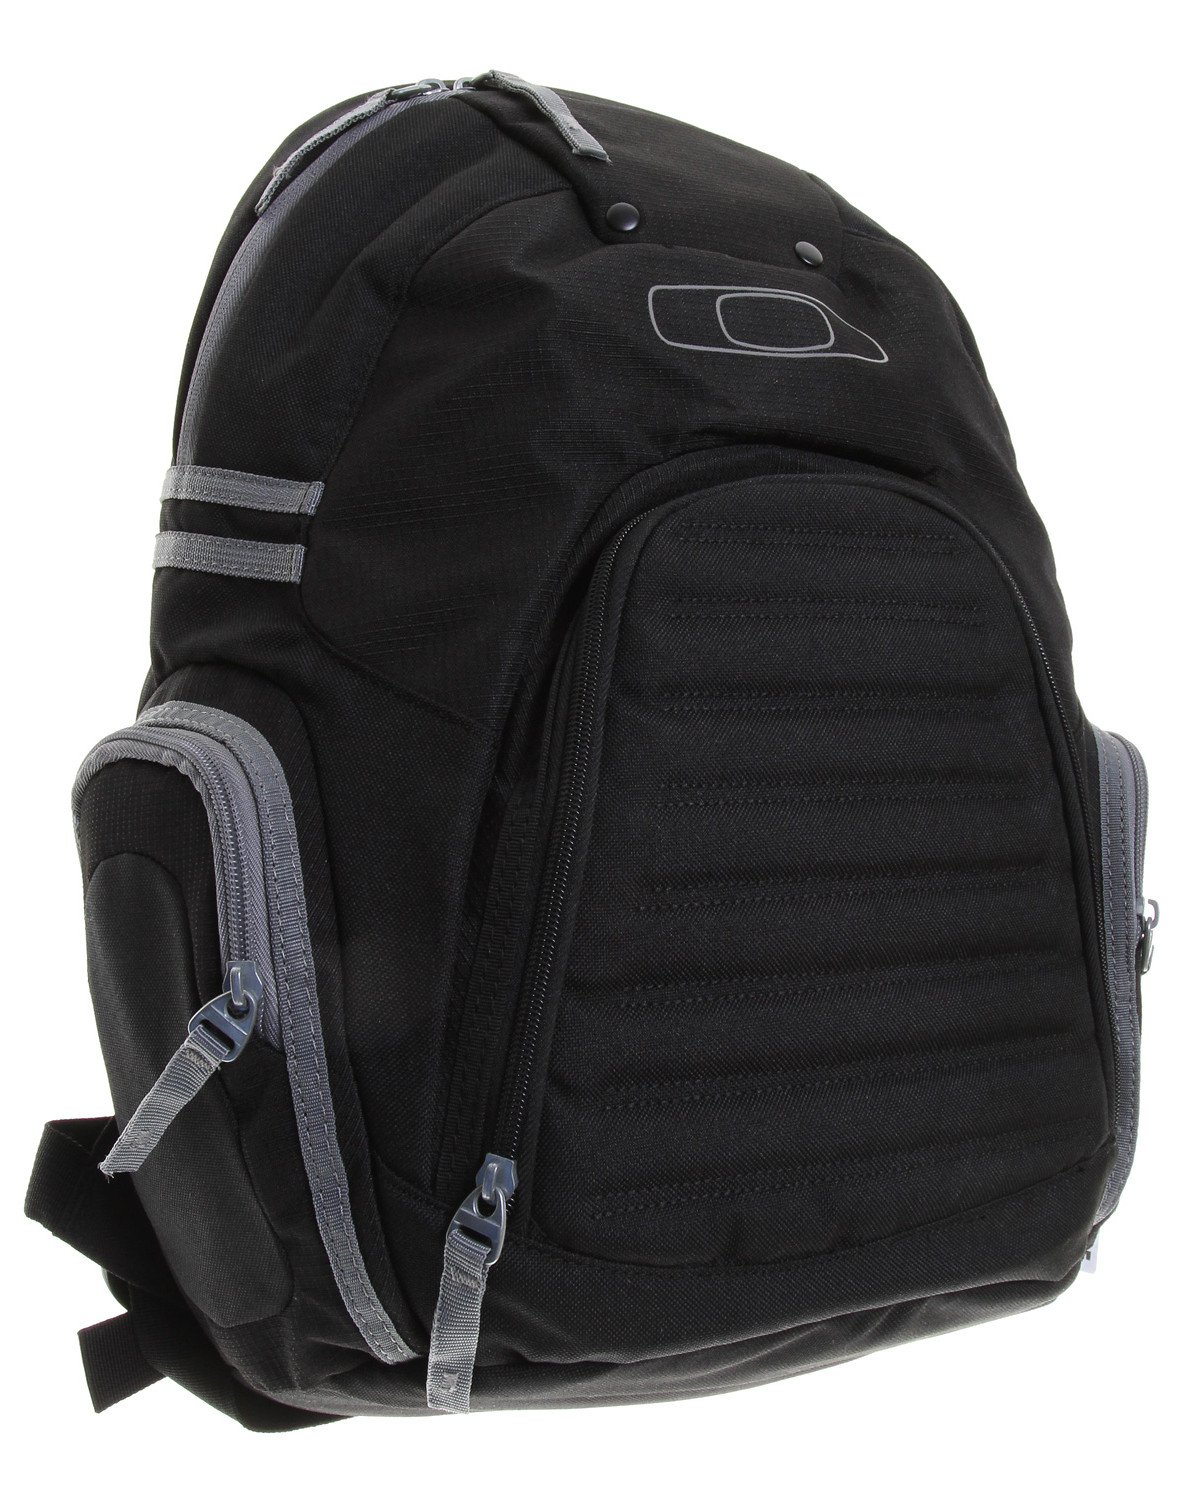 Oakley Planetary Backpack Black - Comparisons